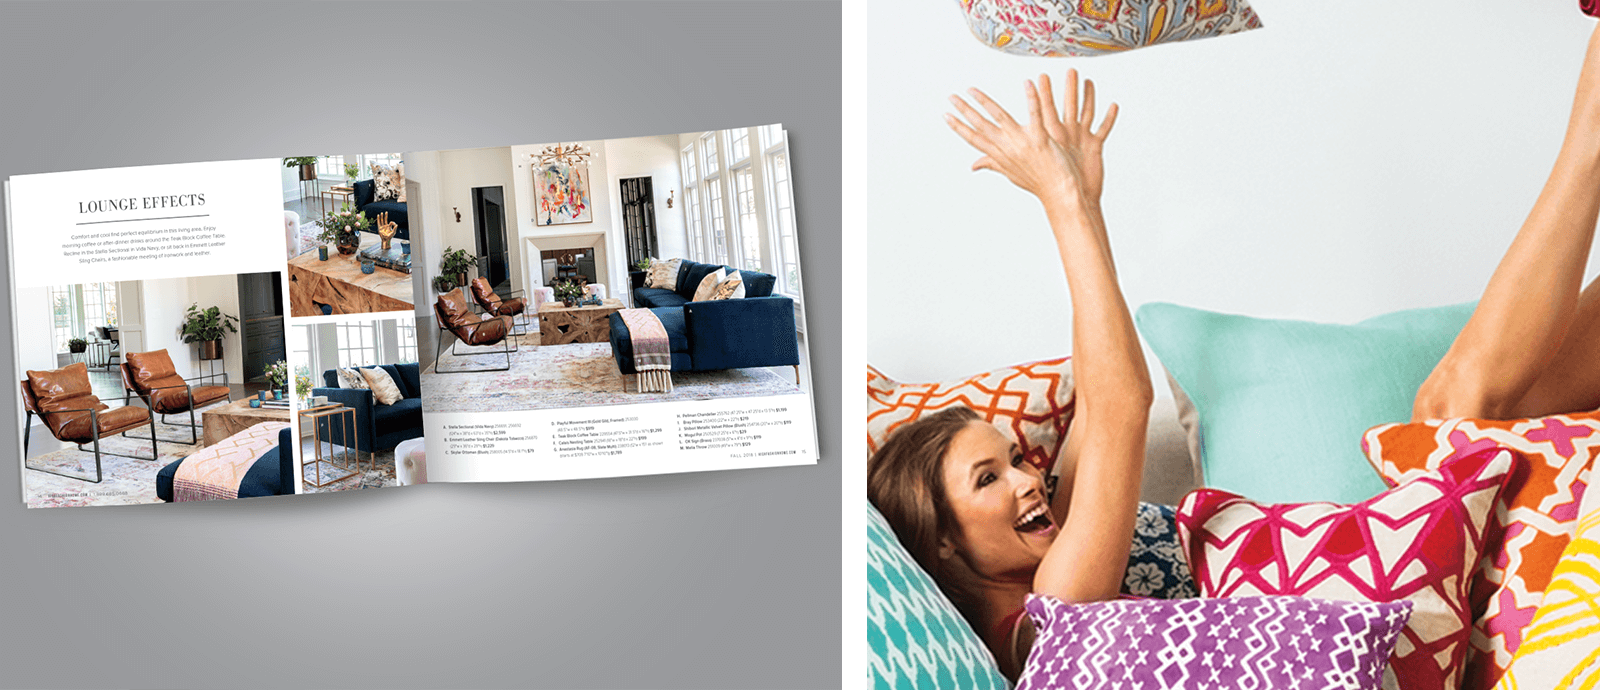 Images of a printed brochure with furniture pieces and a laughing woman playing with throw pillows on the right